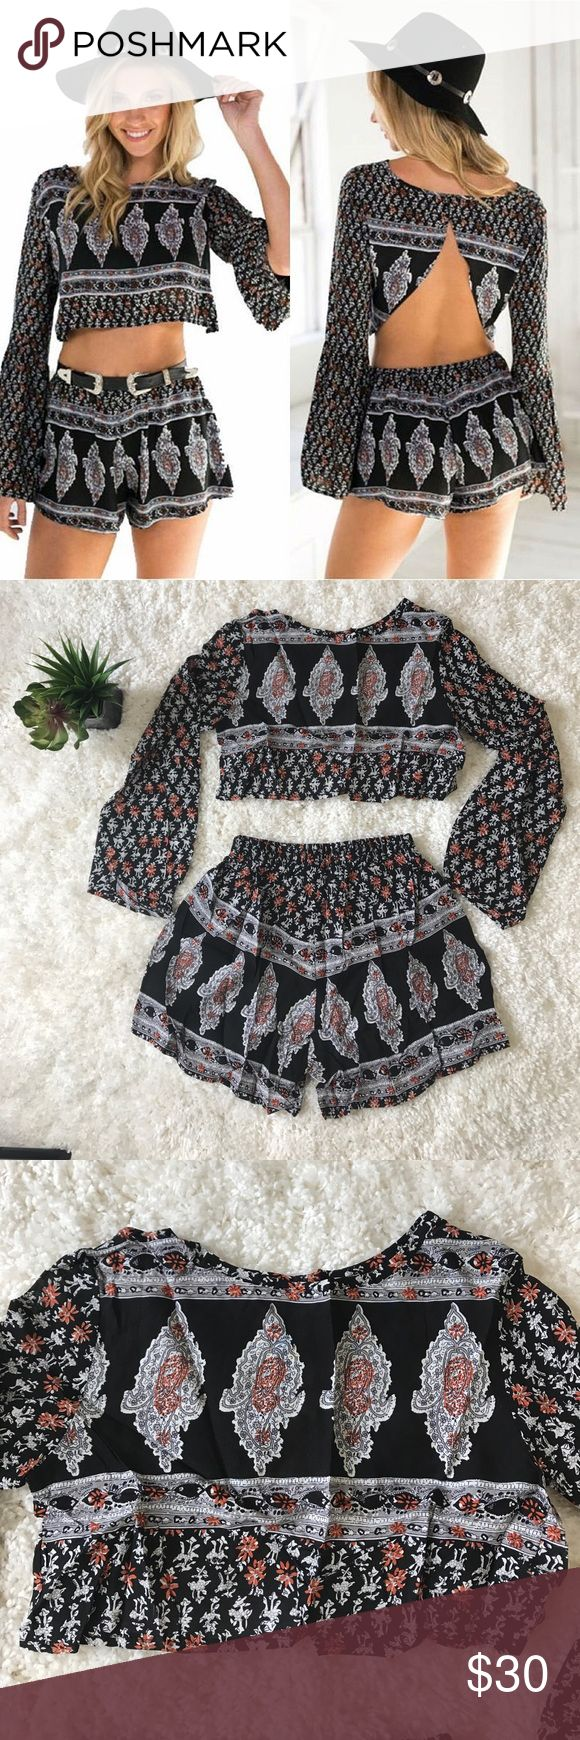 Boho chic long sleeve crop top and shorts set NWOT boho chic long sleeve crop top with open back and shorts set. Great for a summer outfit or festival. boutique Tops Crop Tops